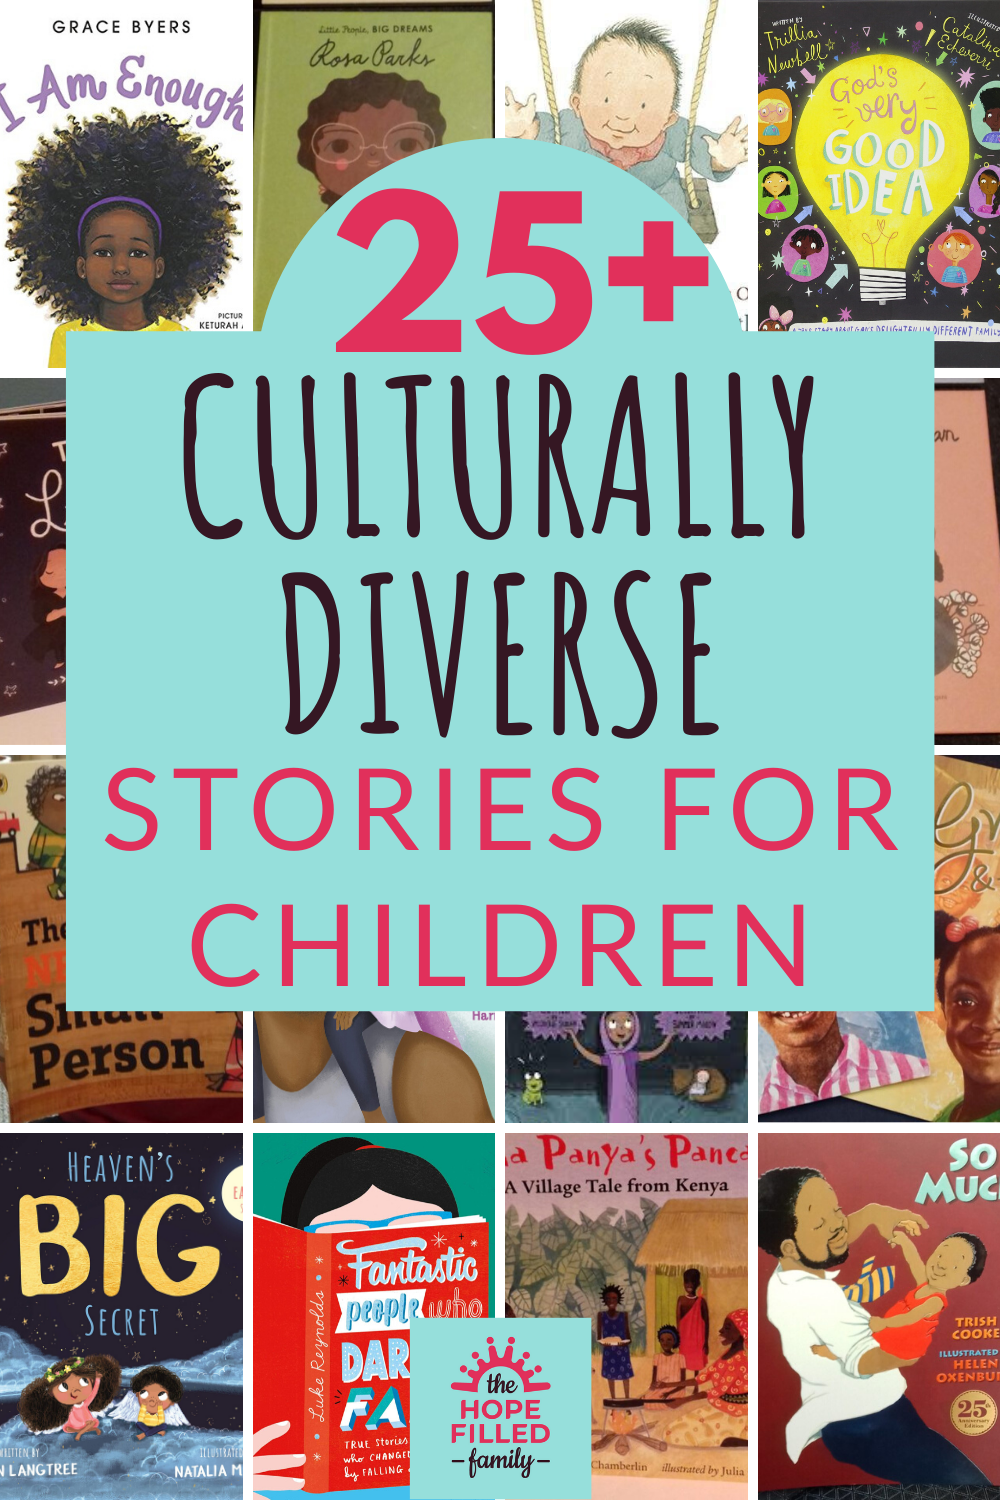 The best books for kids about race that they need on their bookshelves. in classrooms and in libraries. These 25+ suggestions have all been enjoyed by our family, and are guaranteed to raise healthy discussions about cultural diversity.